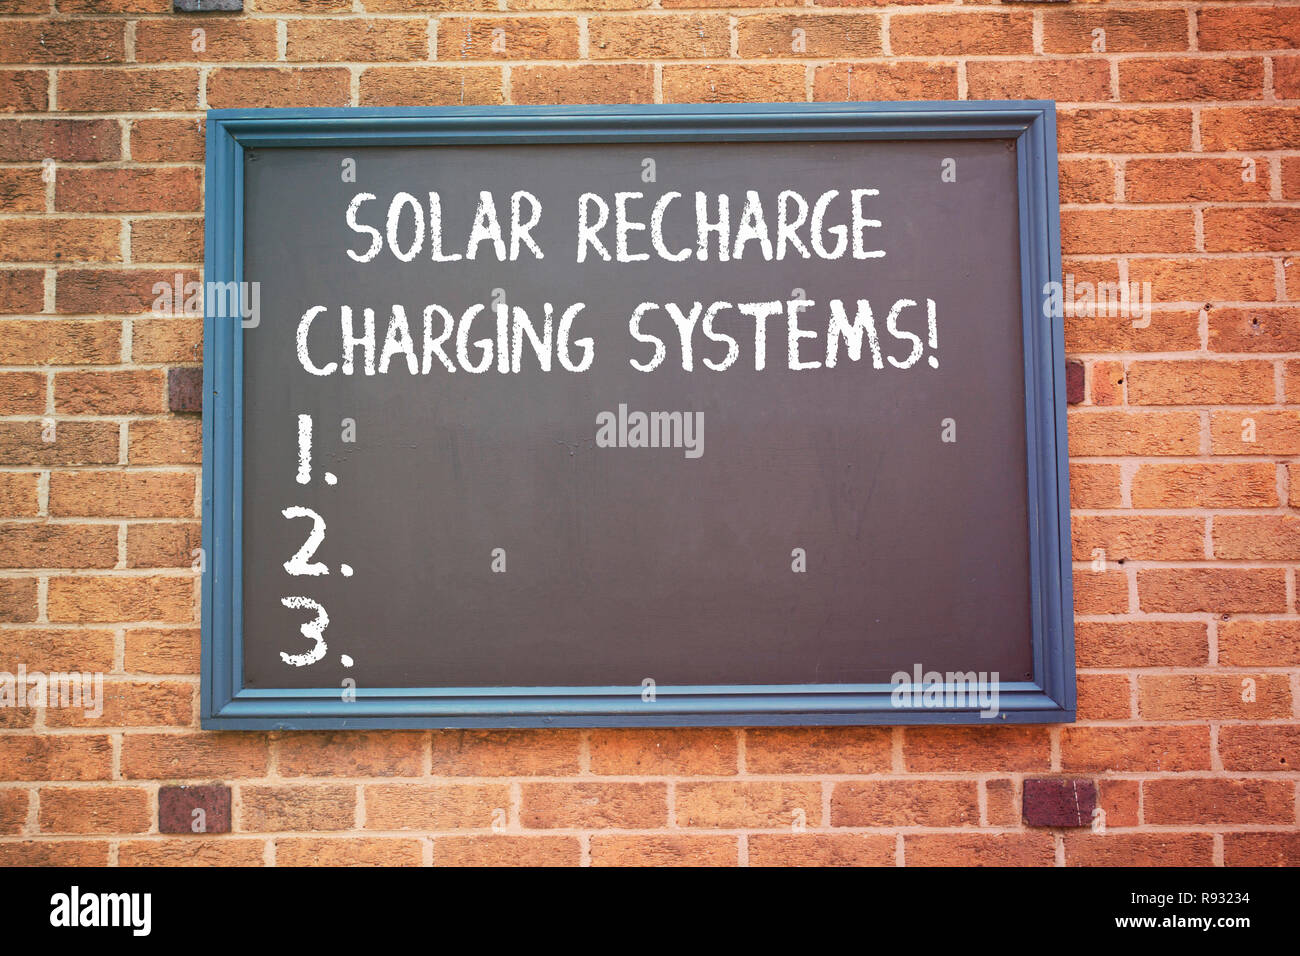 Word writing text Solar Recharge Charging Systems. Business concept for New innovative alternative energy supplies - Stock Image